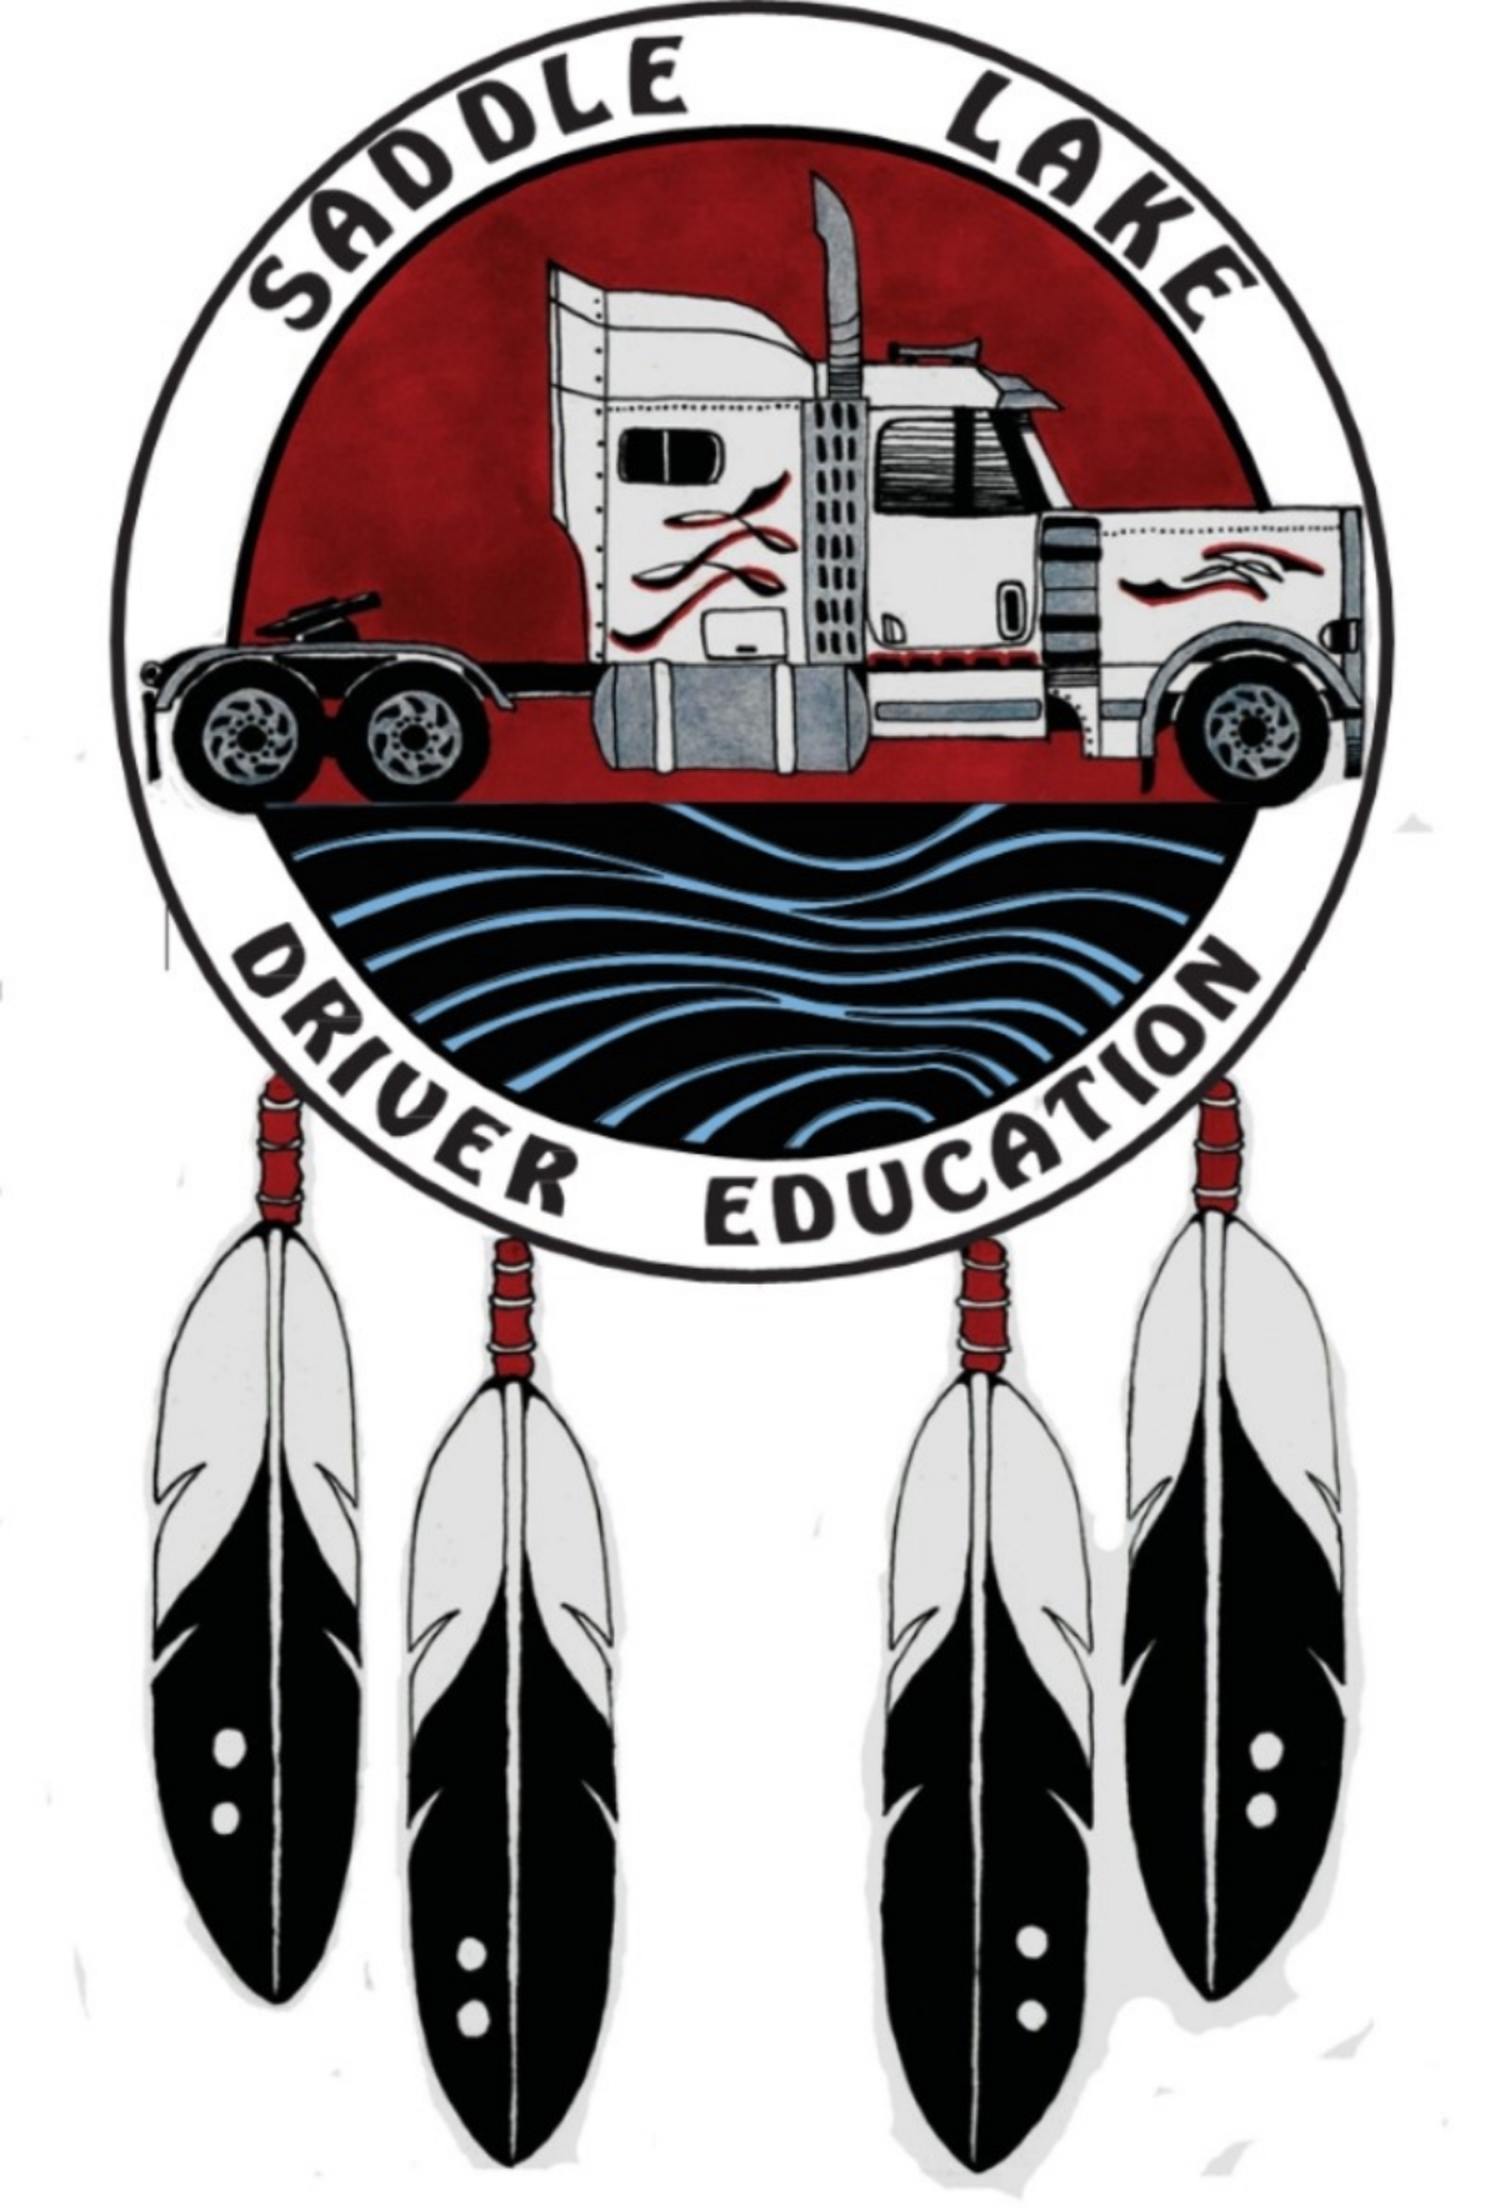 Saddle Lake Driver Education